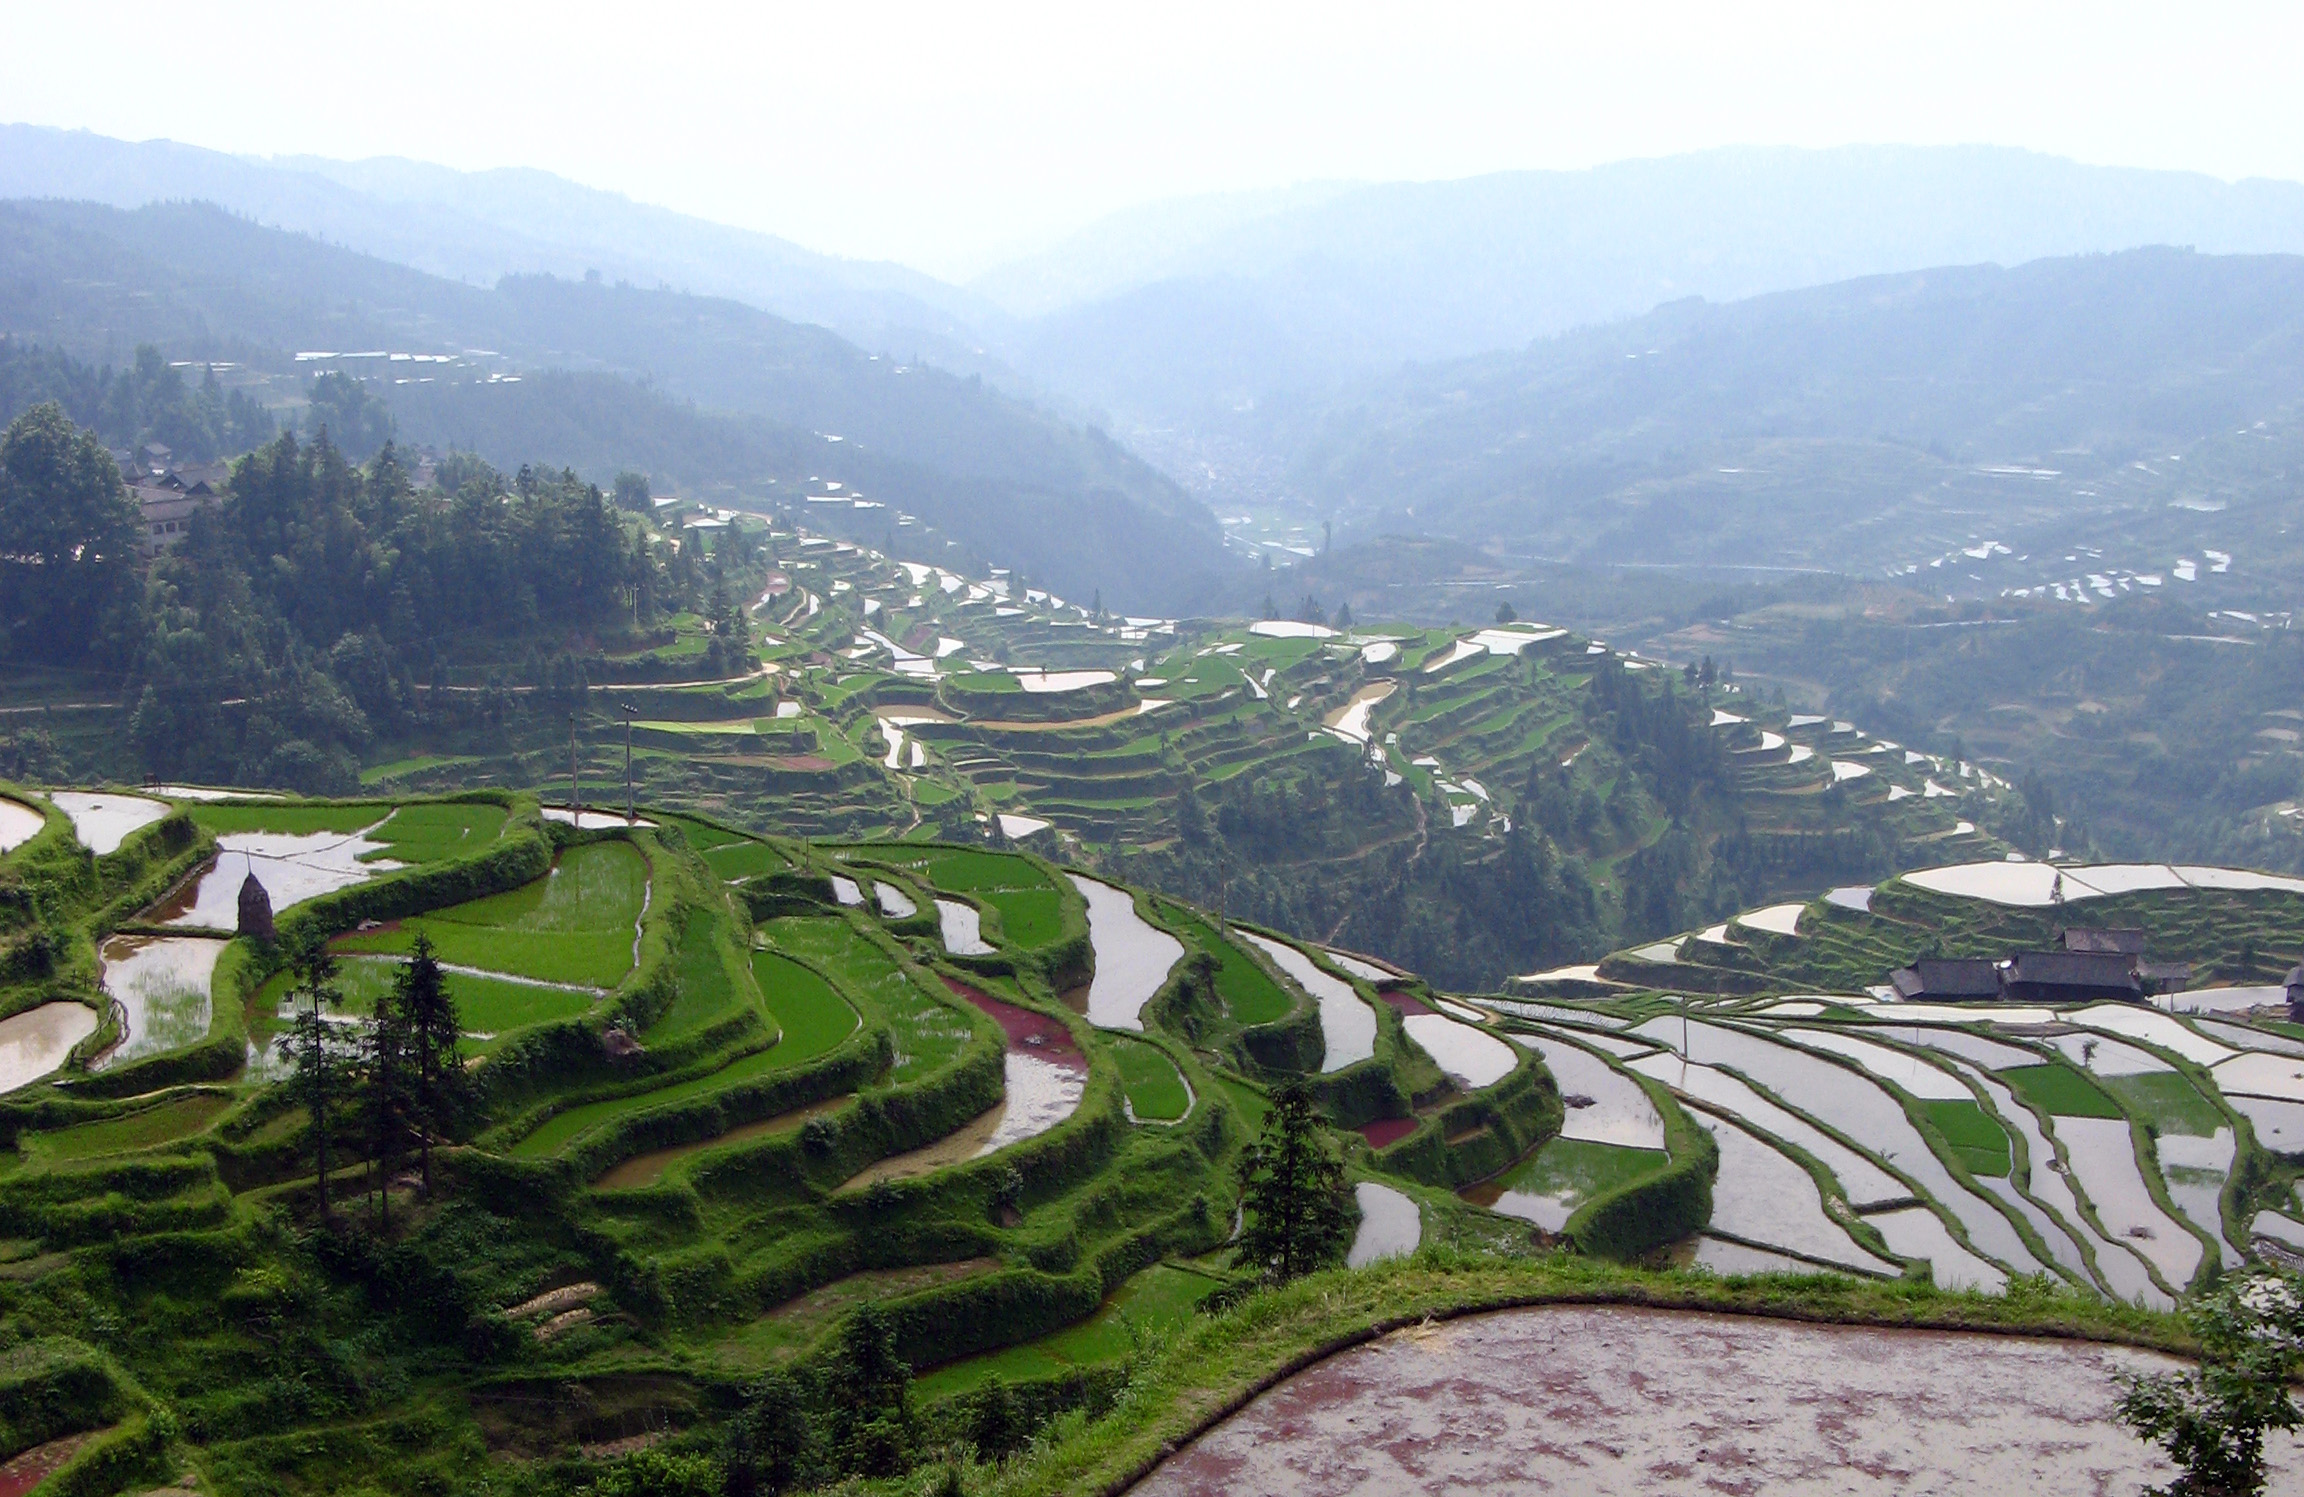 The rice terraces,Congjiang to Zhaoxing